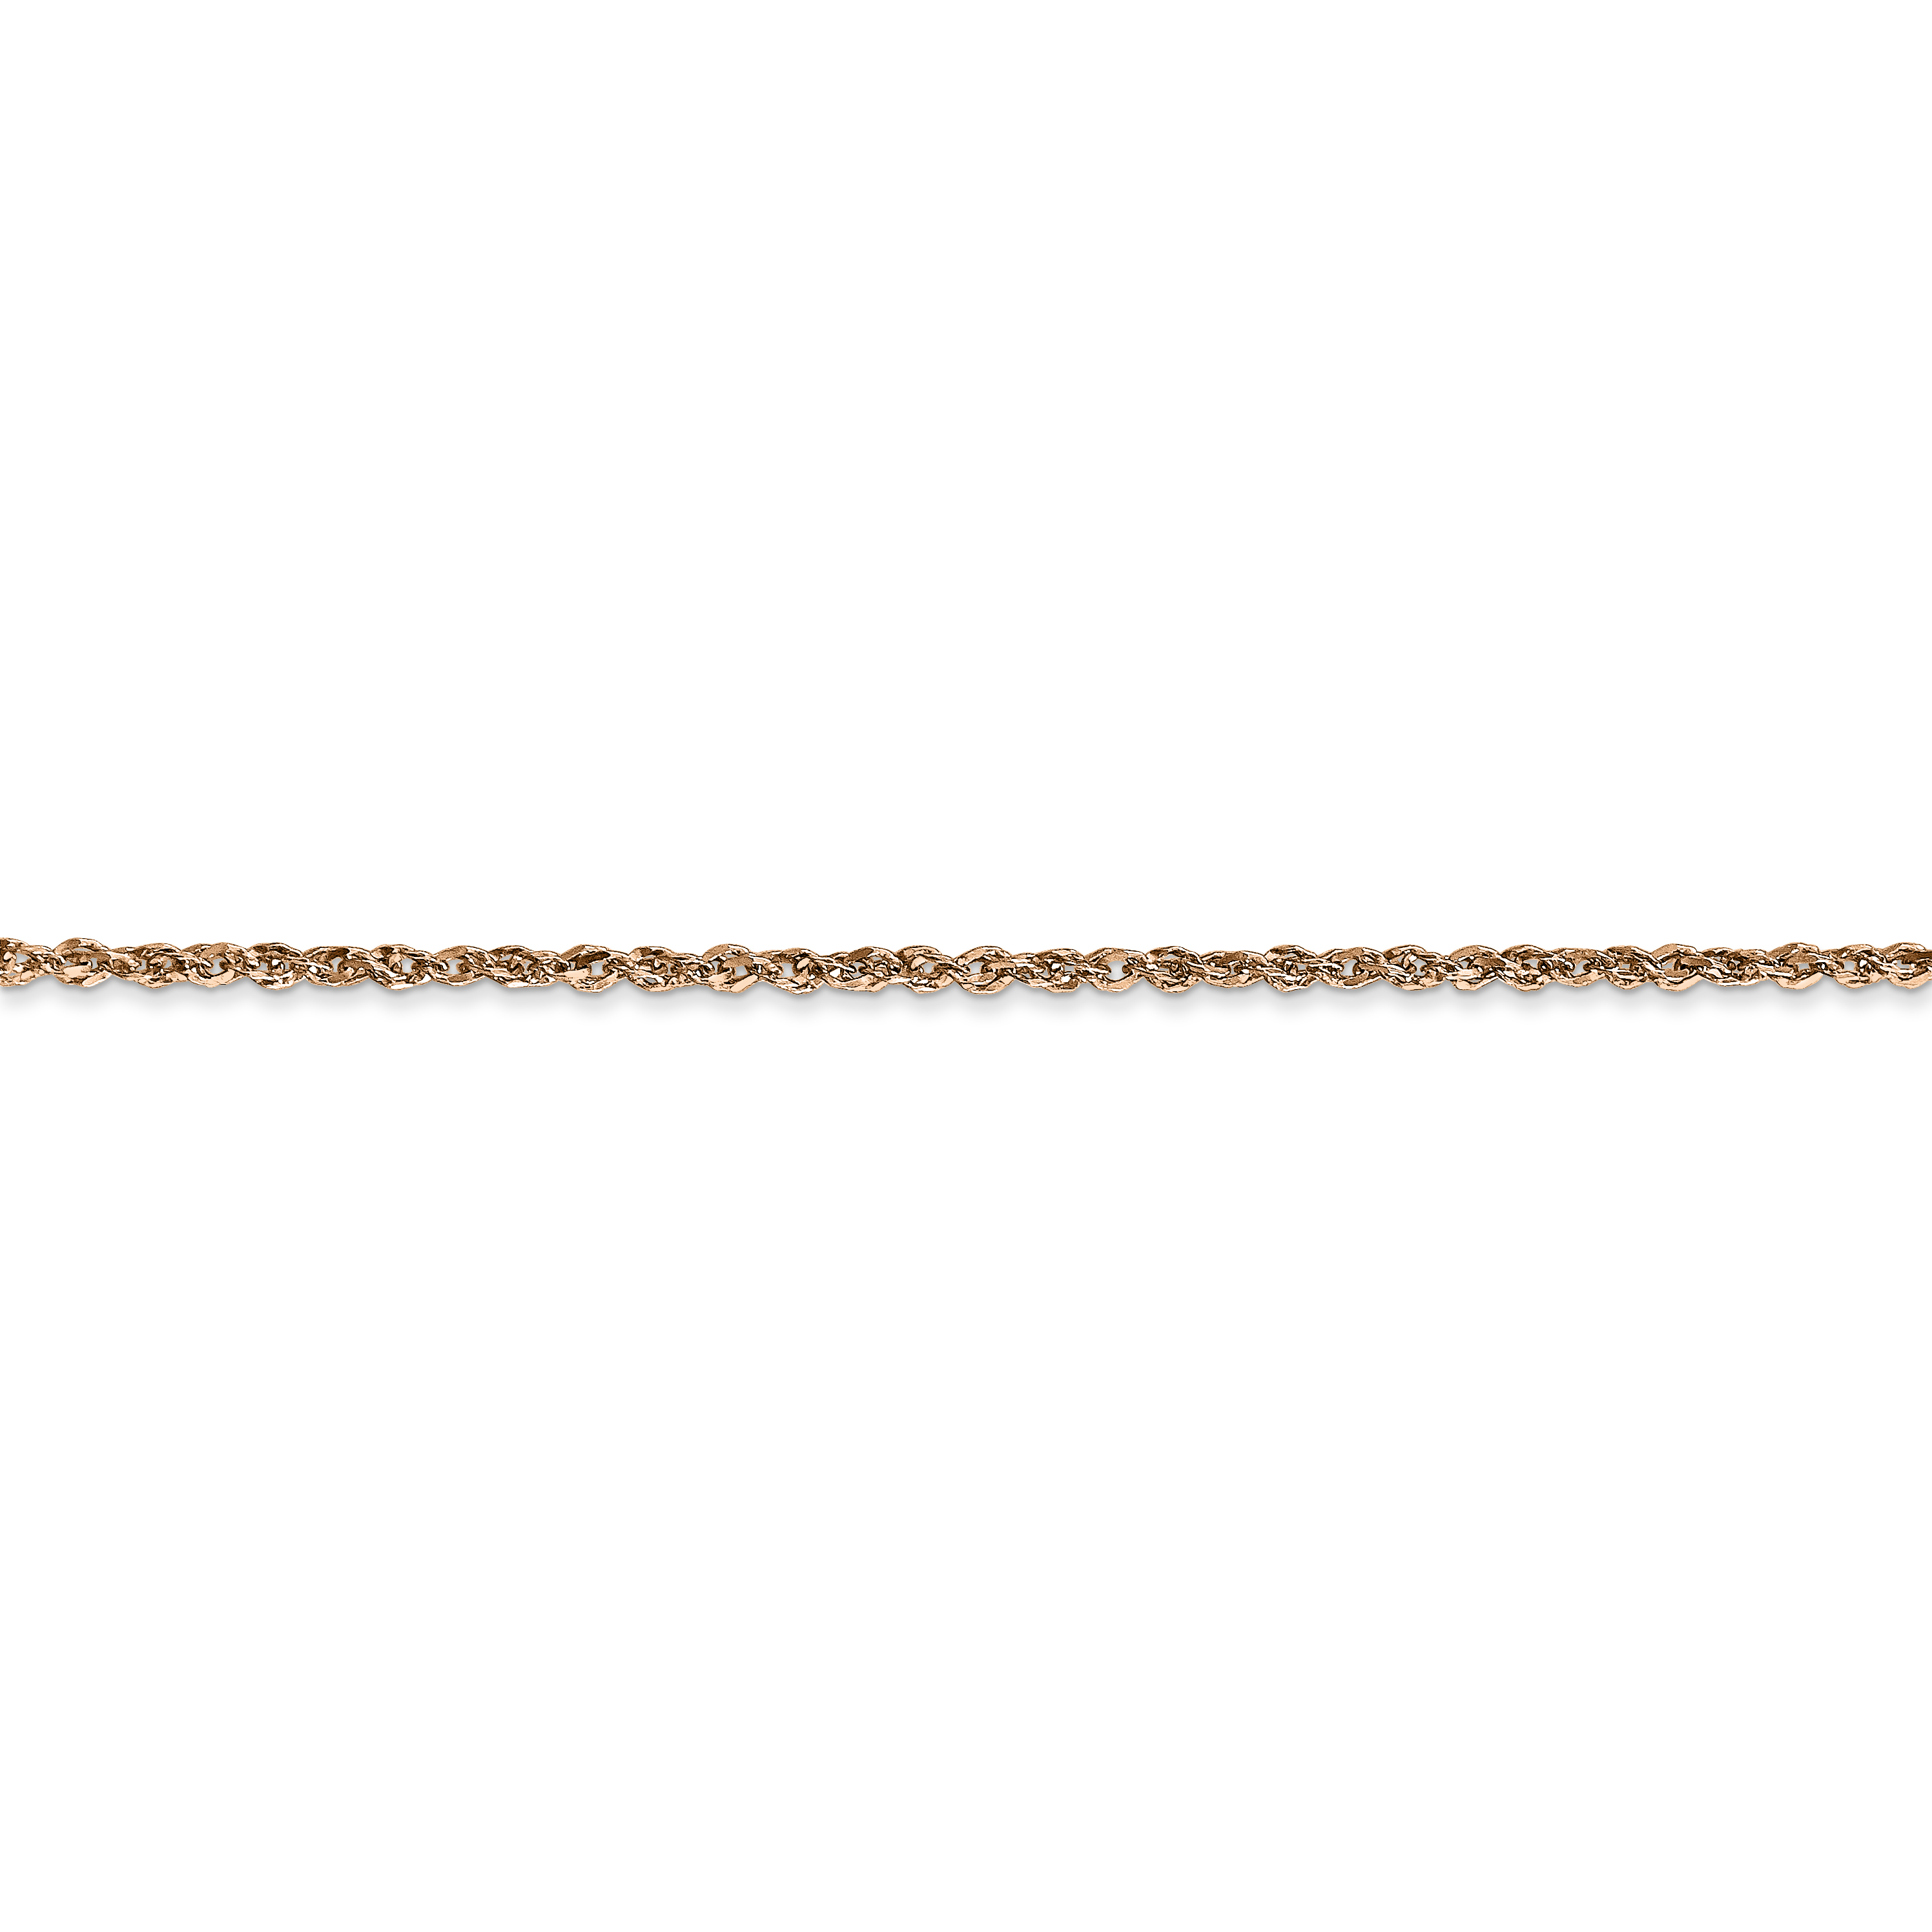 14k Rose Gold 1.7mm Ropa Chain Anklet Ankle Beach Bracelet Fine Jewelry Gifts For Women For Her - image 1 of 4